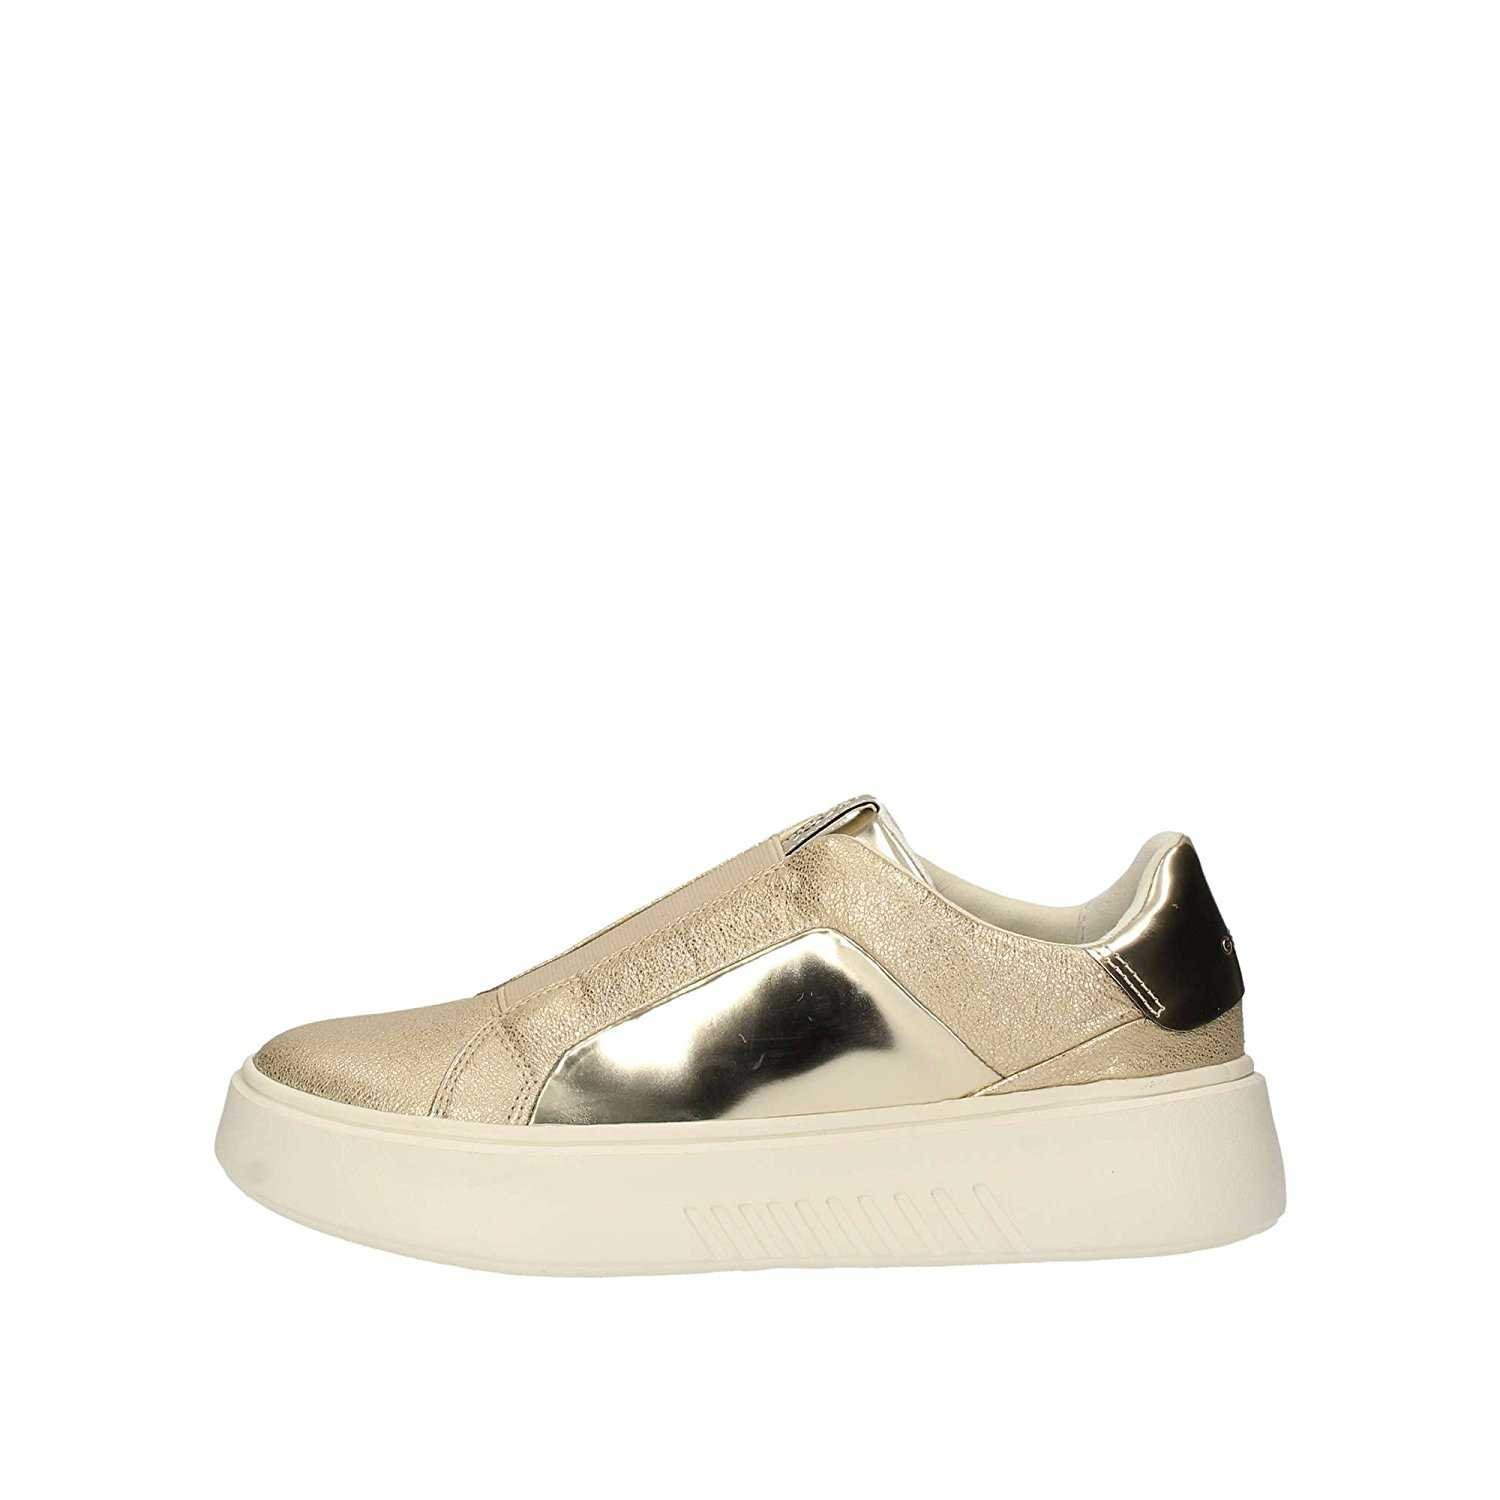 Geox Scarpe Sneaker Donna Platino Oro D828DB 0KYBN C0586 -  mainstreetblytheville.org b11d9ad7e3d